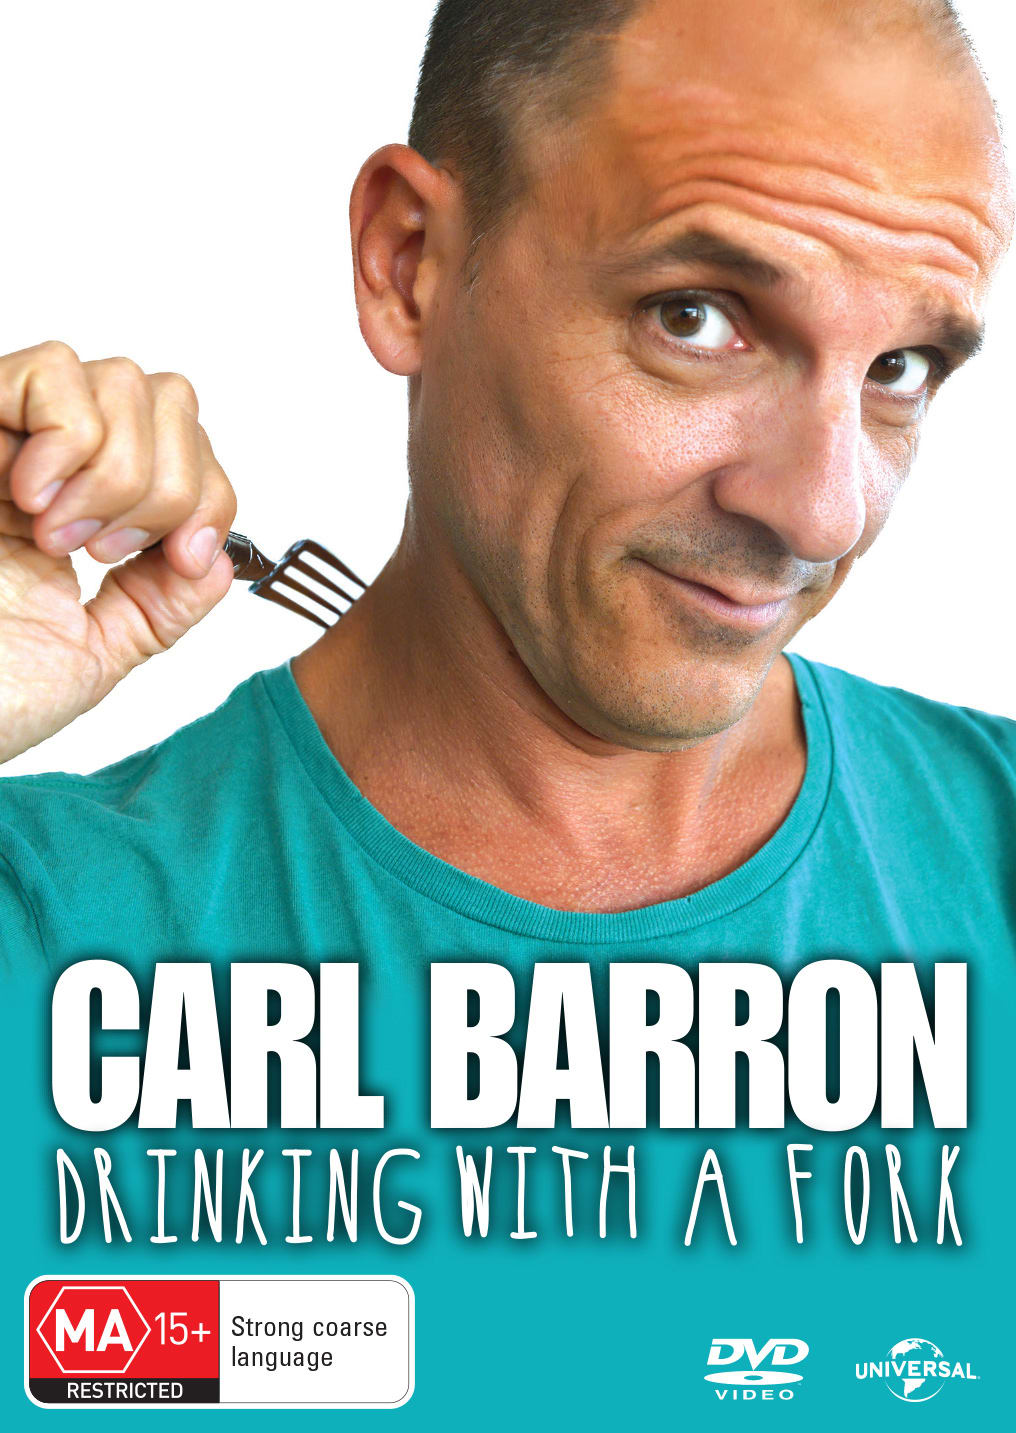 Carl Barron: Drinking With a Fork [DVD]